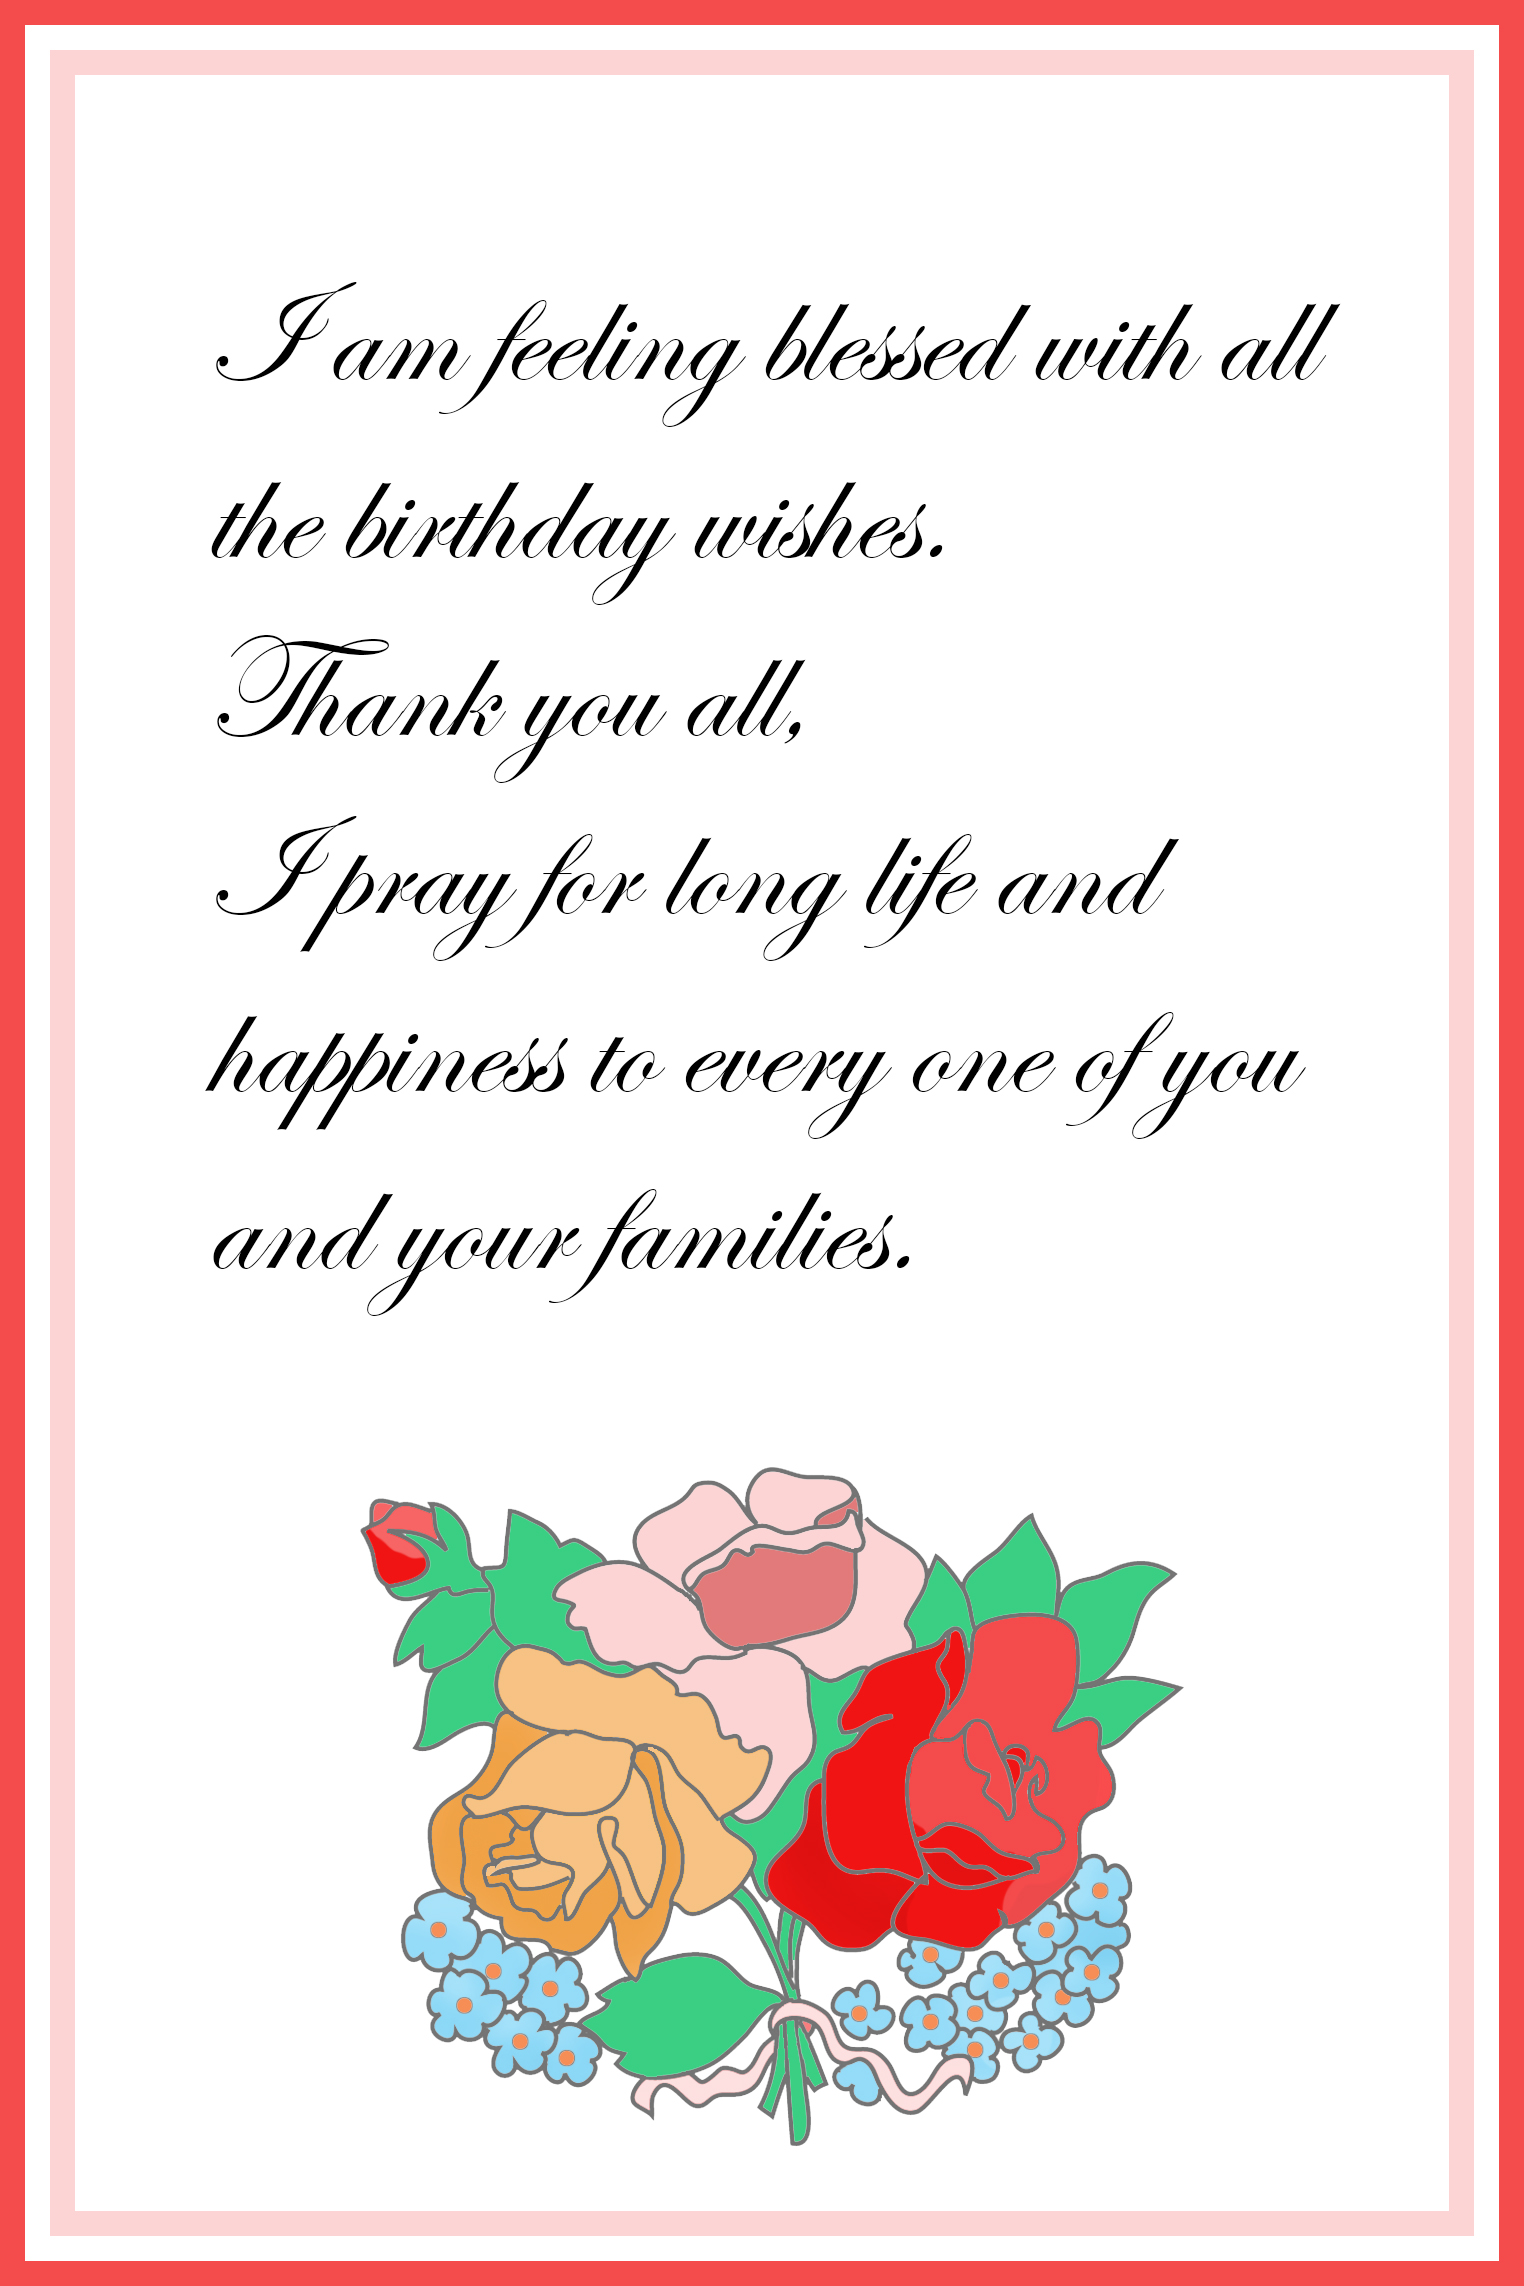 21st birthday greeting card messages ; 1739b2504a9e50ff02bf3c91f6869cde